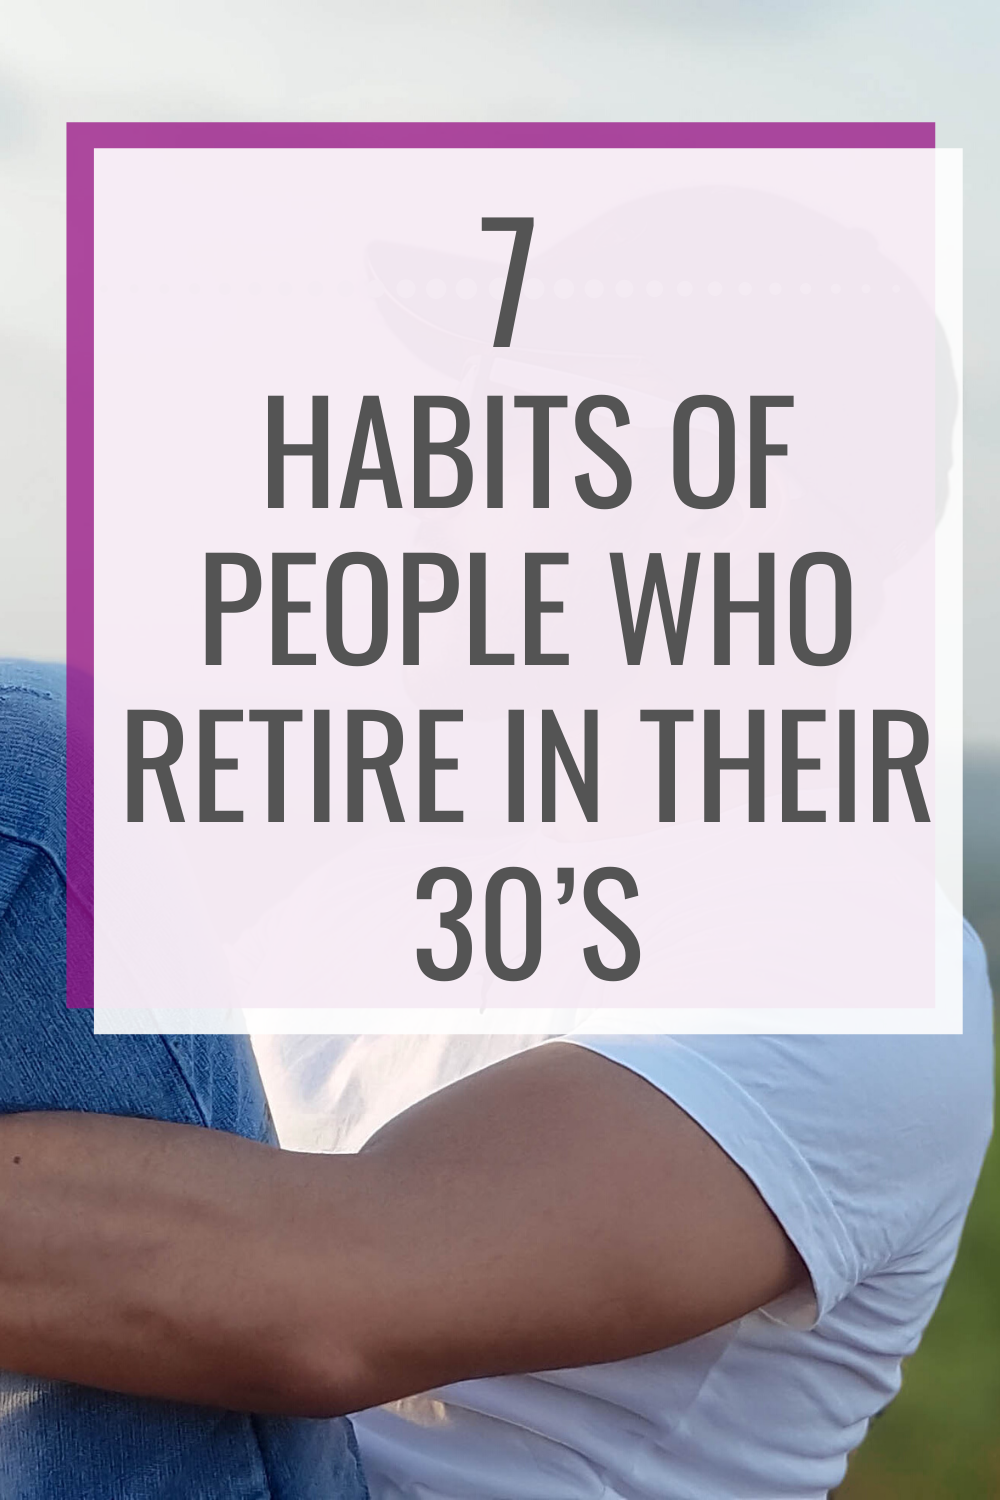 7 habits of people who retire in their 30's